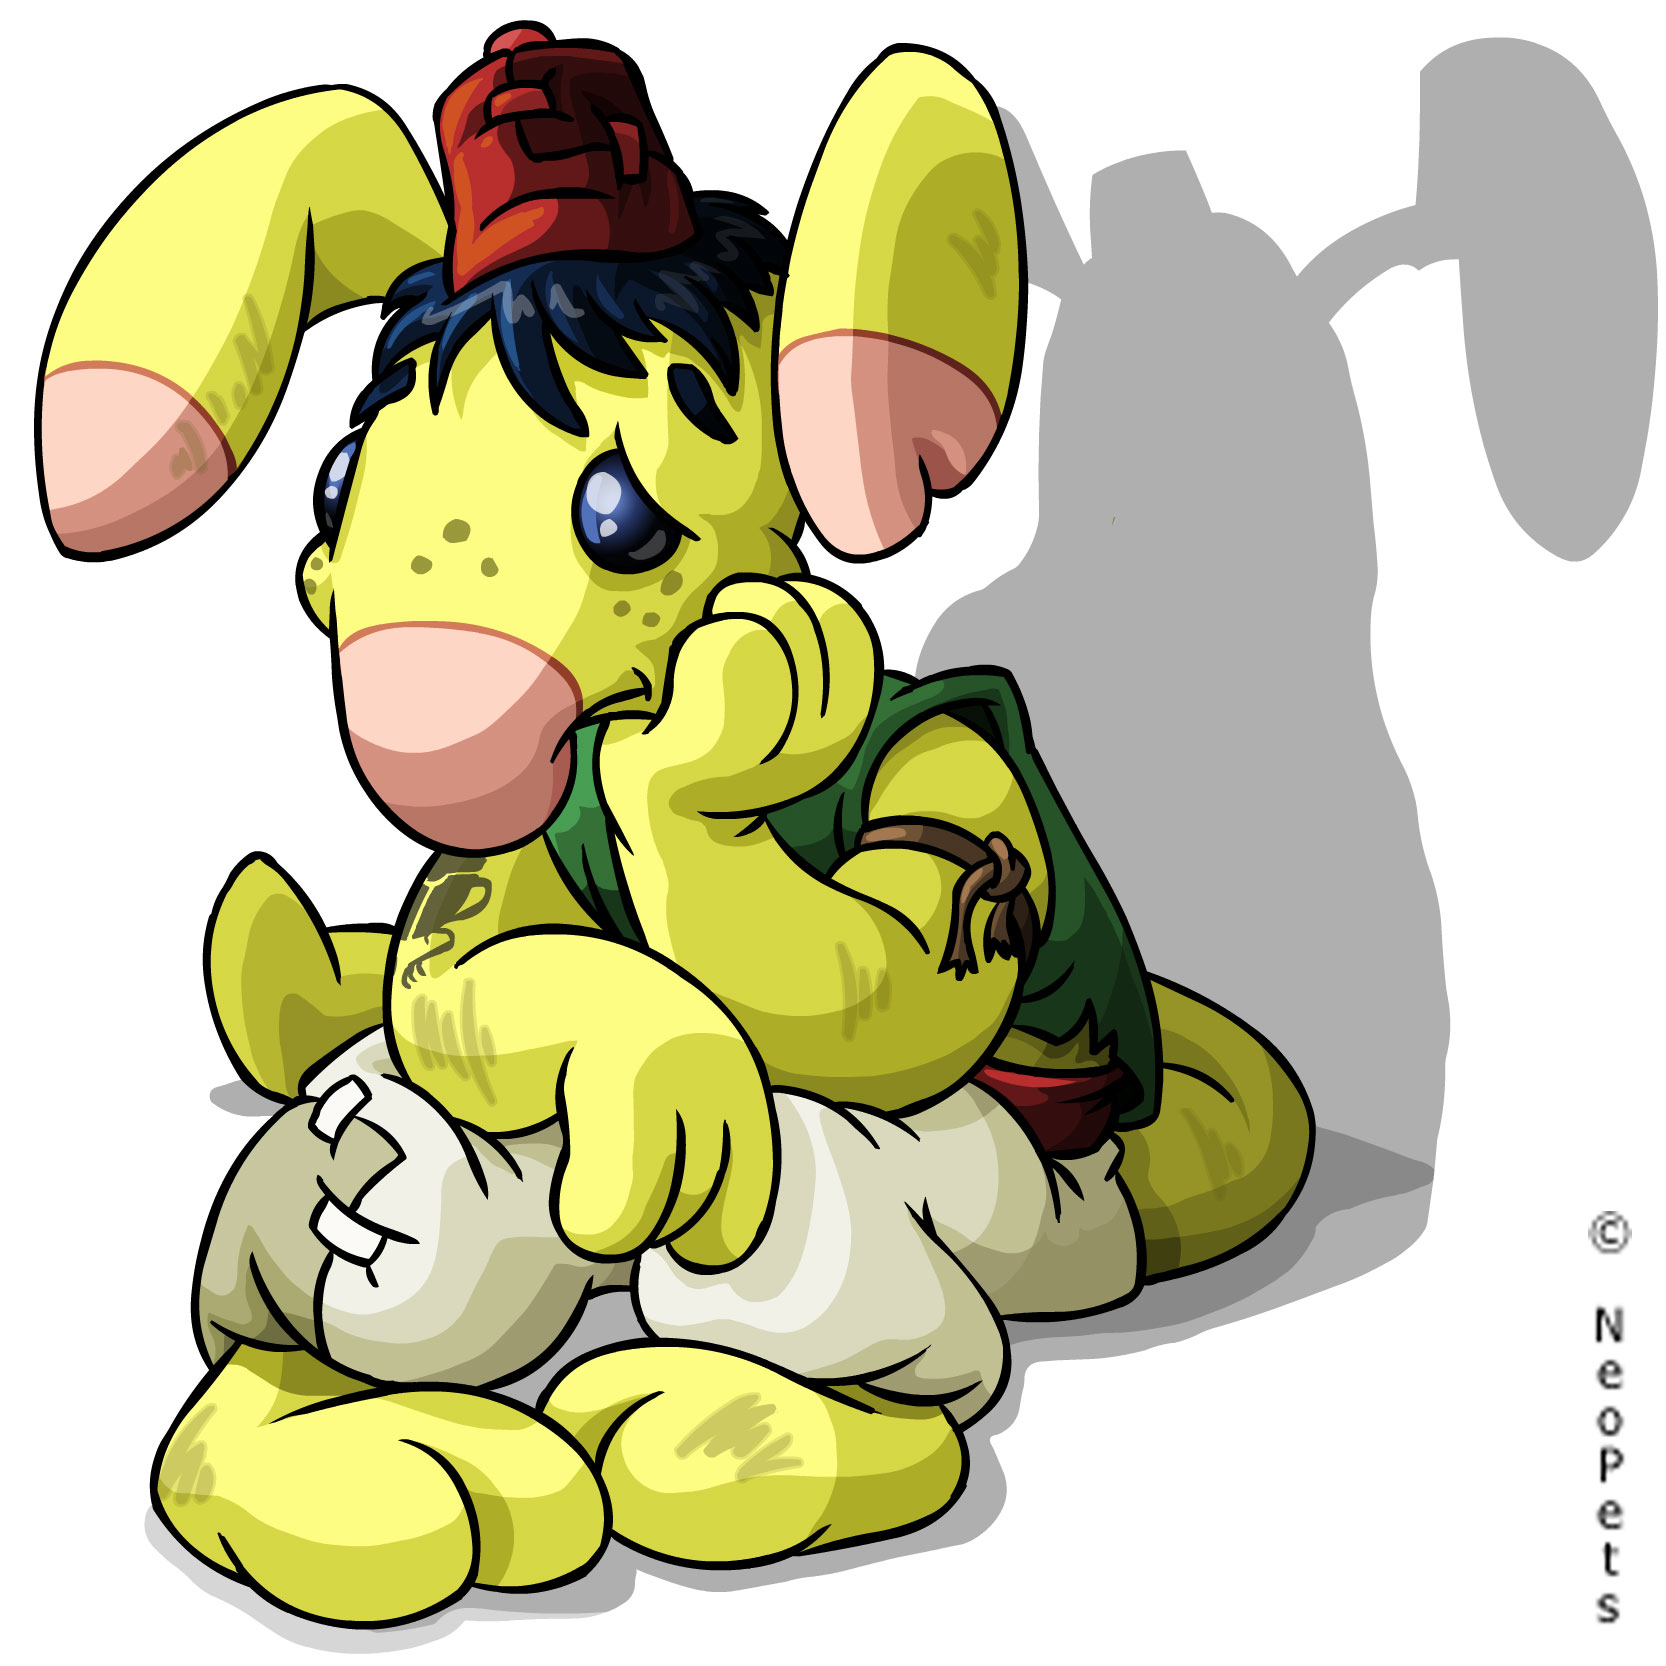 http://images.neopets.com/press/desert_5.jpg